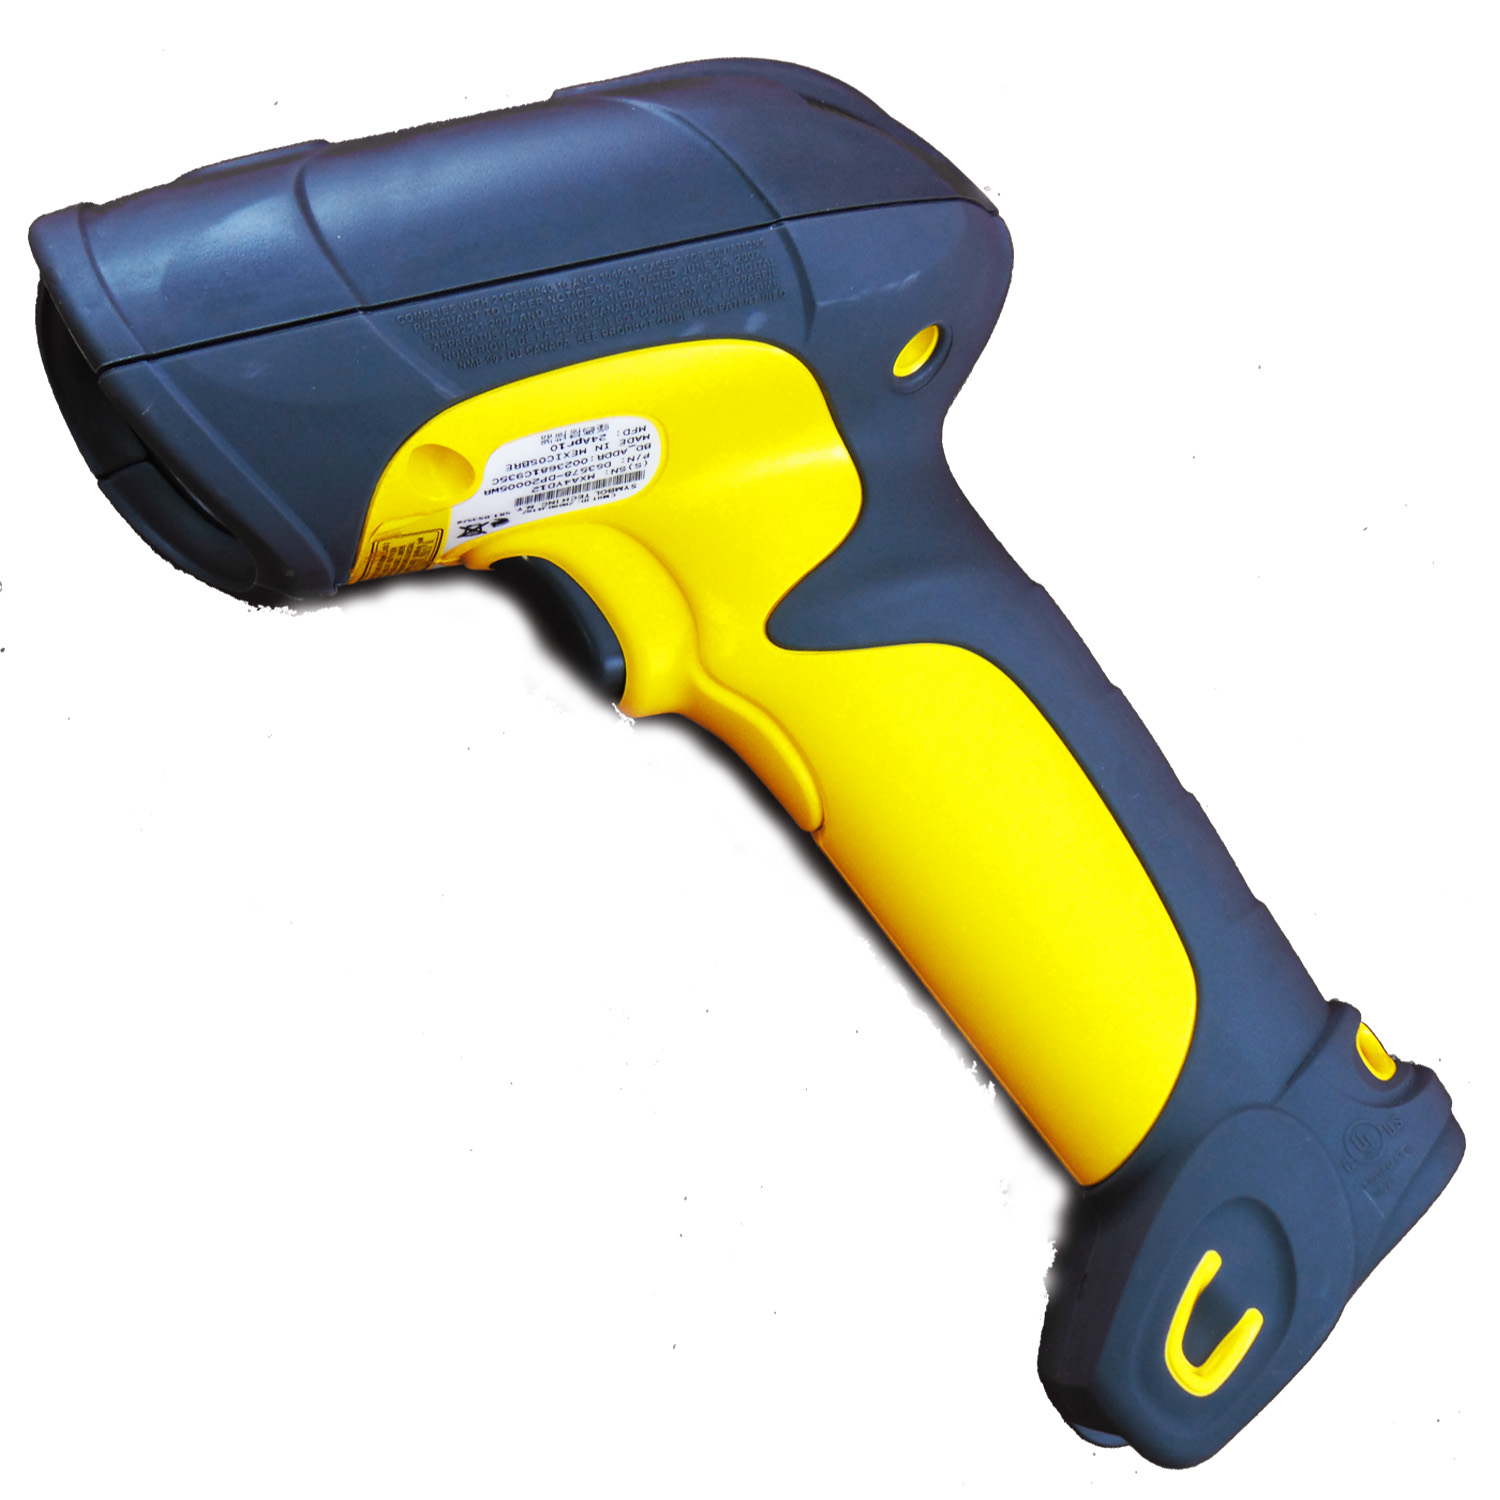 DS3578 SERIES CORDLESS BLUETOOTH BARCODE SCANNER